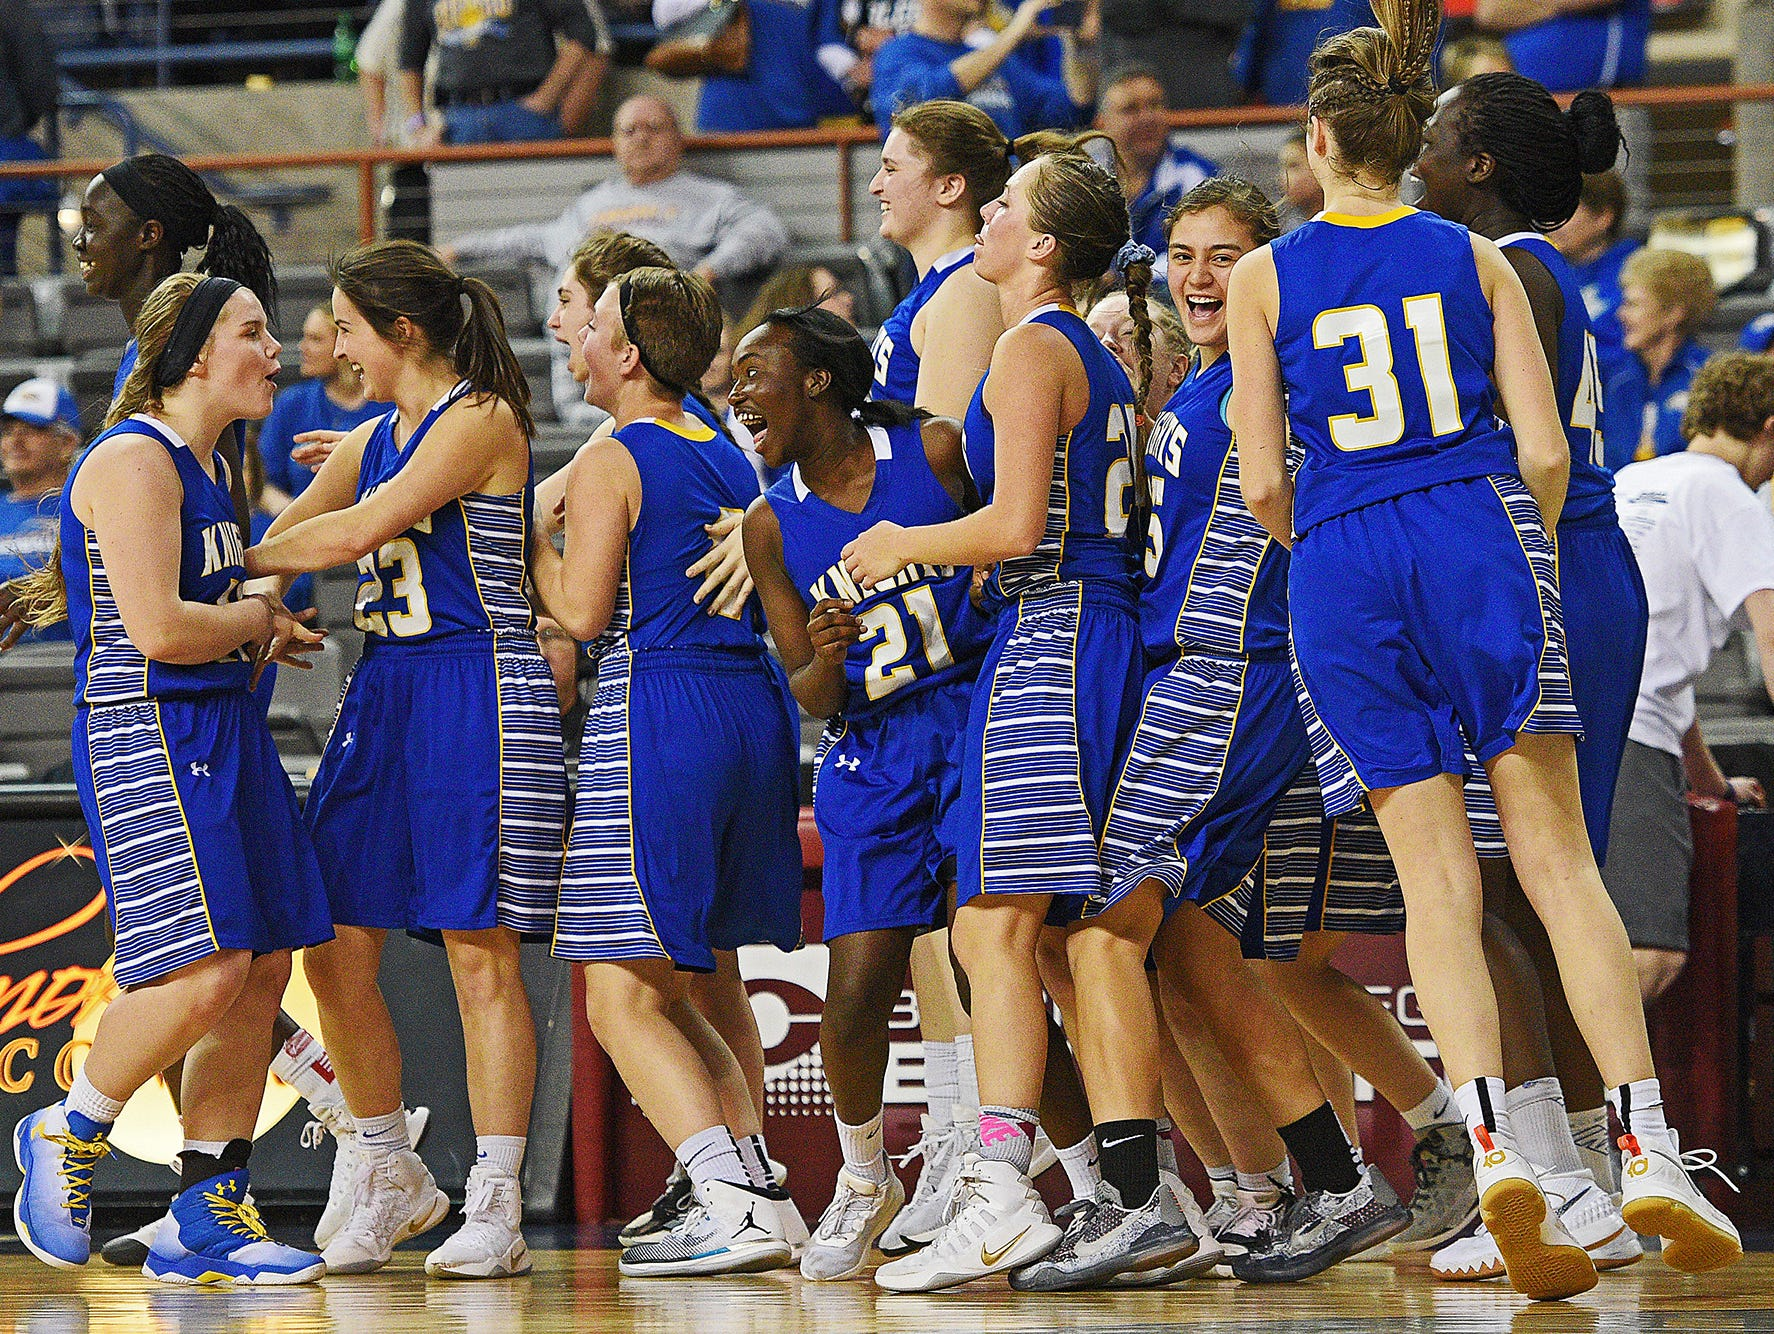 O'Gorman players react after their 37-33 win over Roosevelt in a 2017 SDHSAA Class AA State Girls Basketball quarterfinal game Thursday, March 16, 2017, at Rushmore Plaza Civic Center in Rapid City.